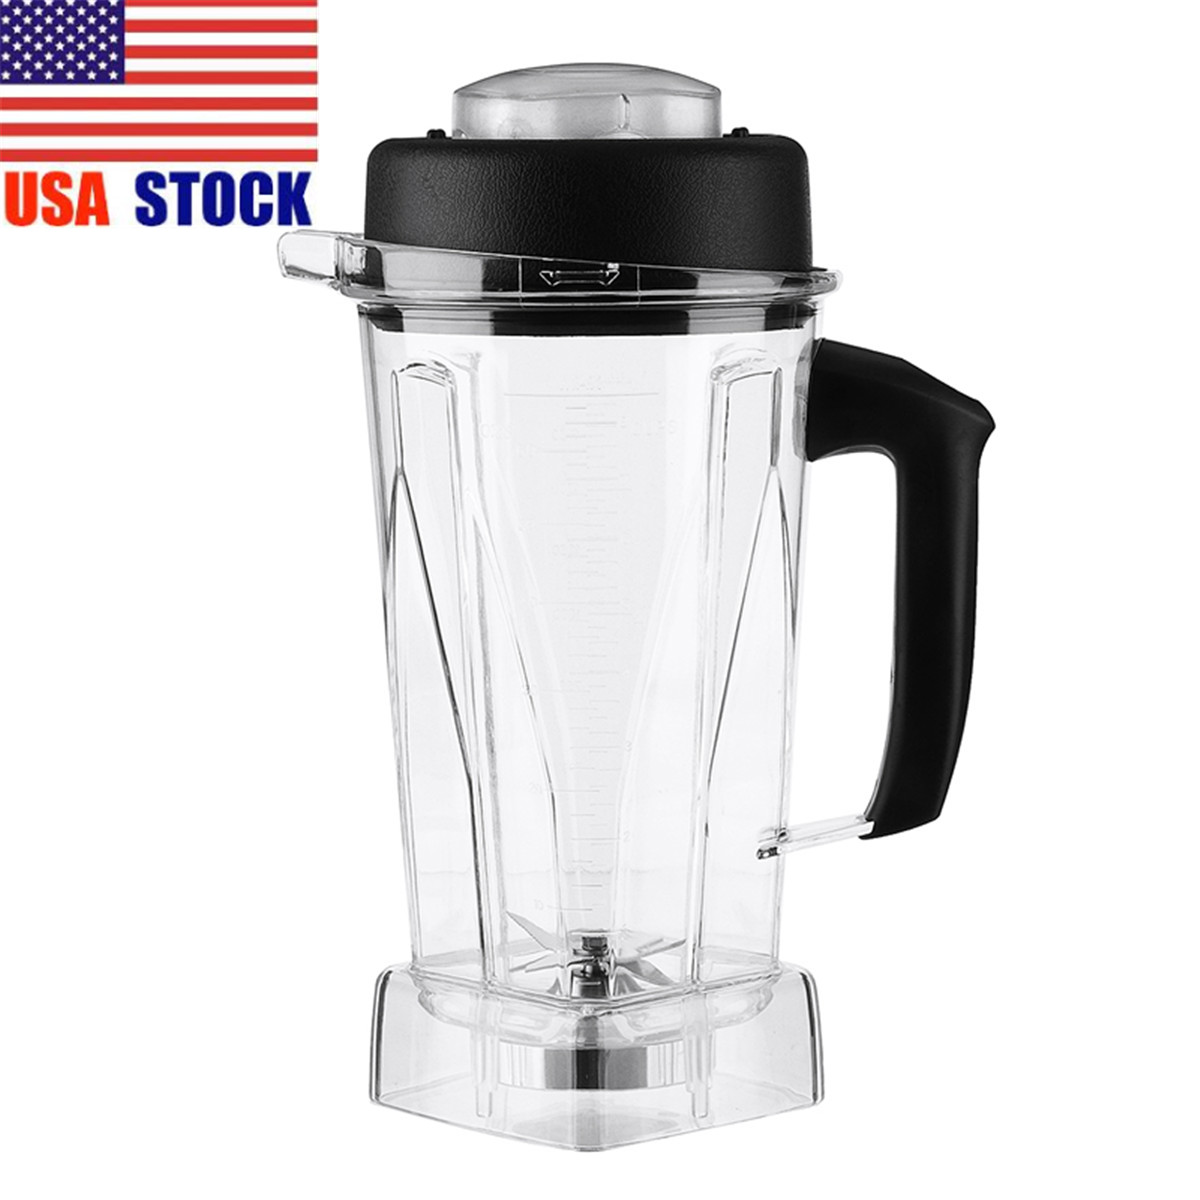 2L Container Jar Jug Pitcher Cup Commercial Blender/ Spare Parts for Vitamix 60oz Home Kitchen Appliance Food Mixer Part Durable image